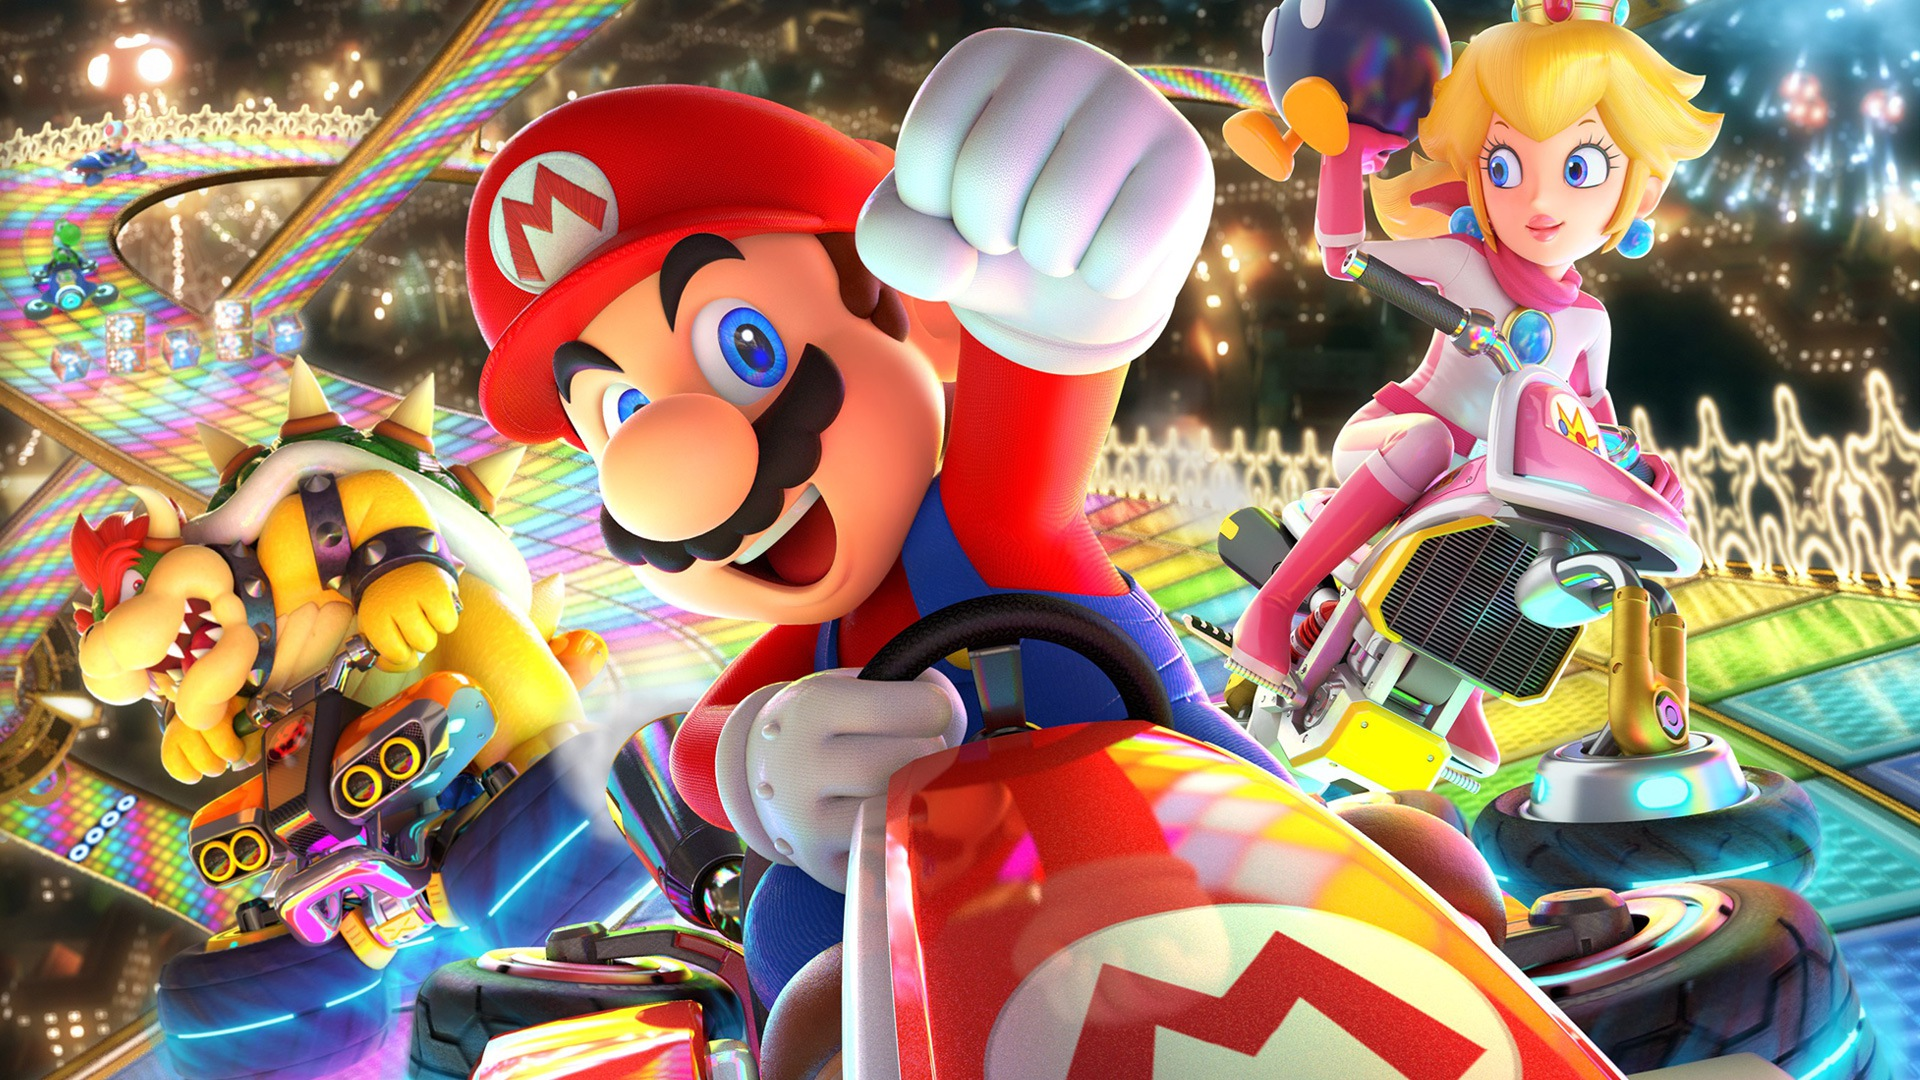 Mario Kart 8 Background: Mario Kart 8 Deluxe Full HD Wallpaper And Background